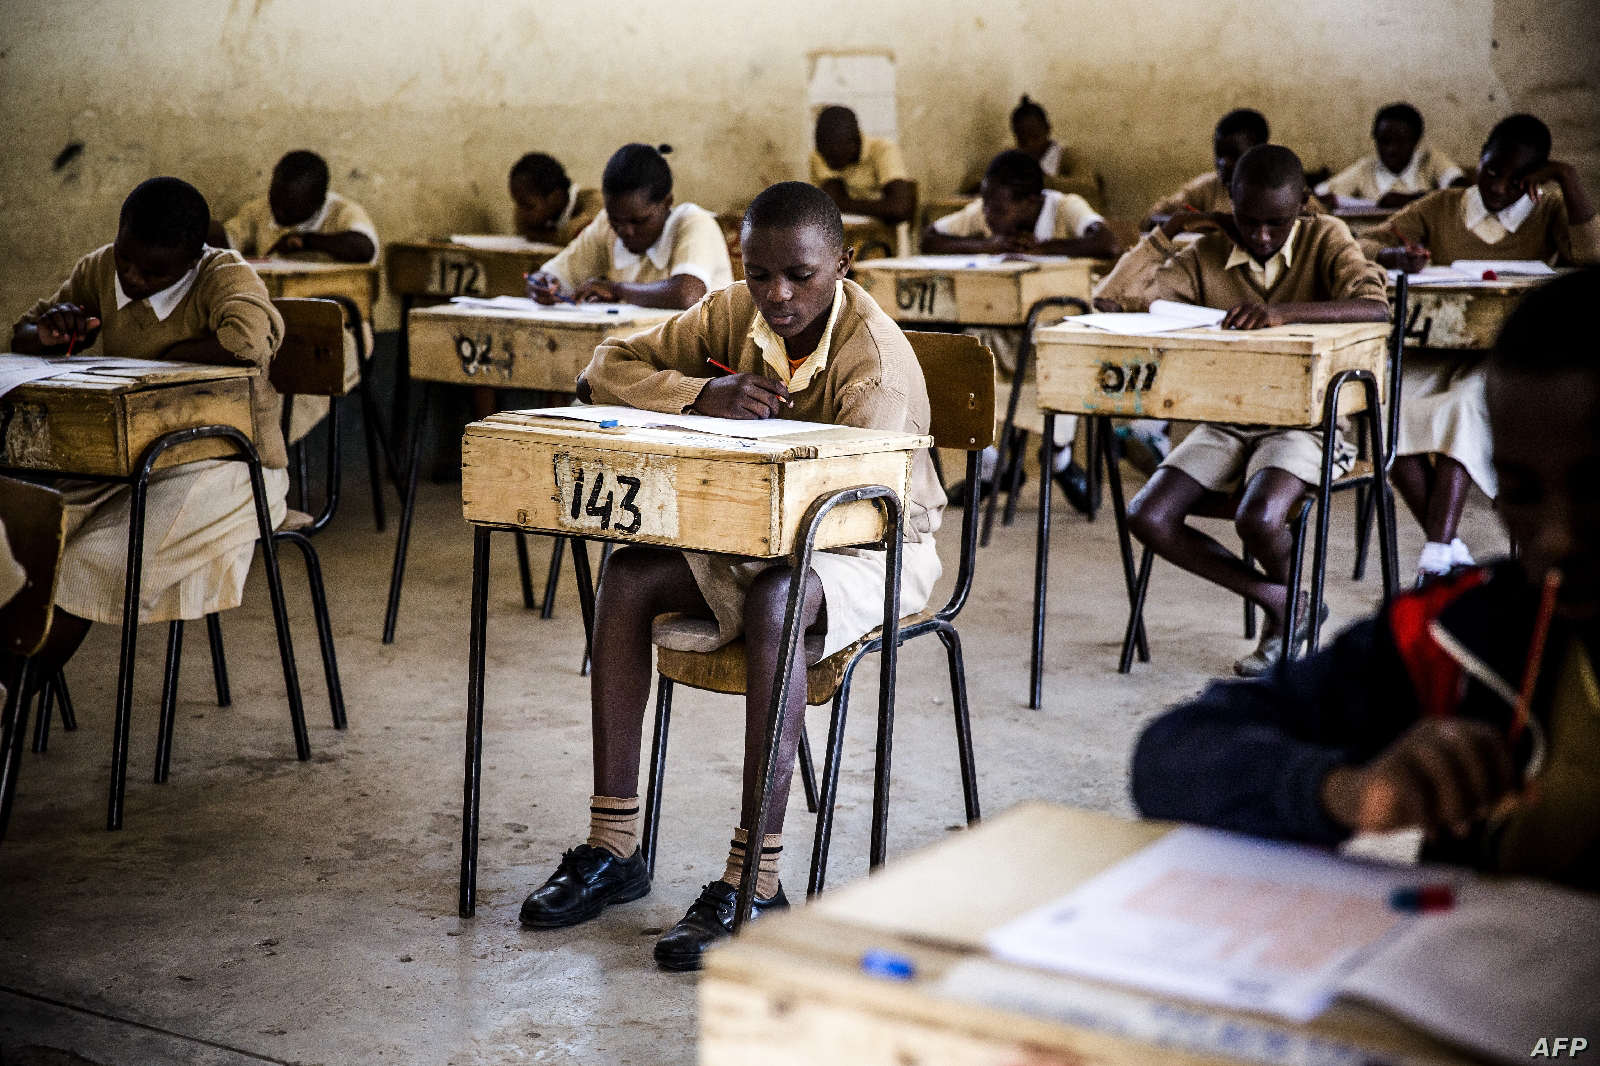 KSCE exams are ongoing in Kenya Secondary school.